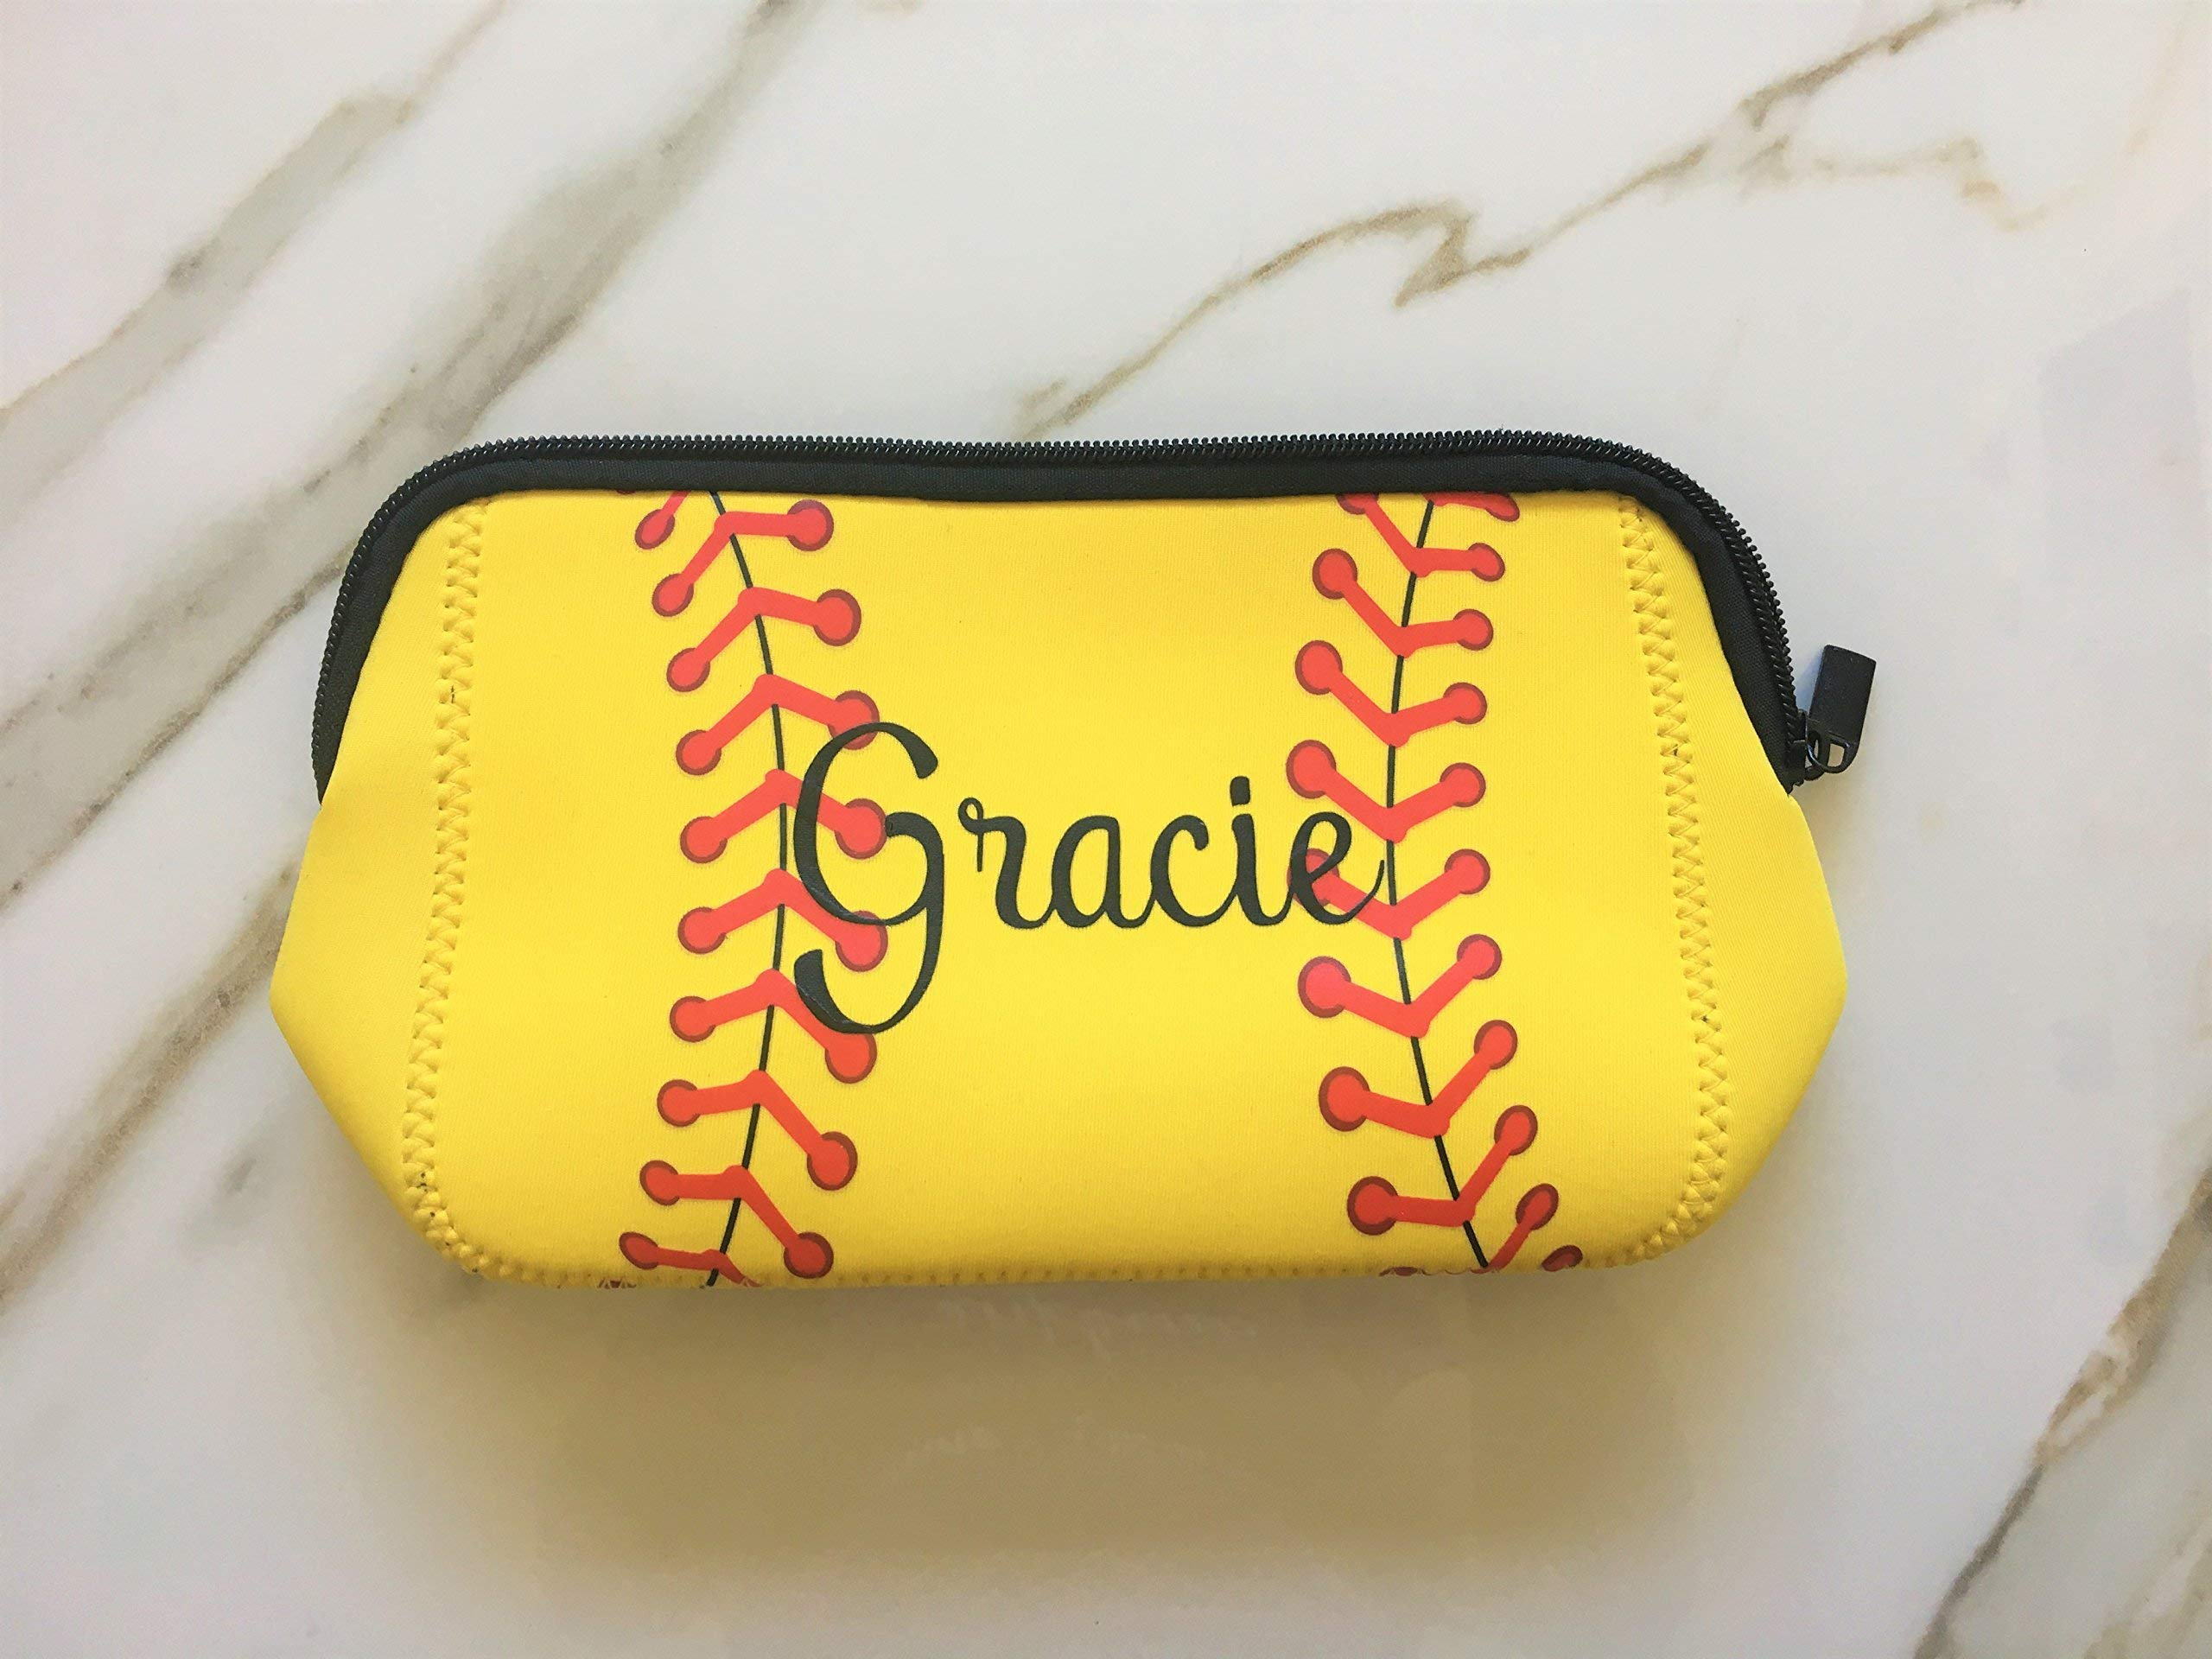 Personalized Bag Softball Team Gifts for Girls Teens Players Mom Coaches